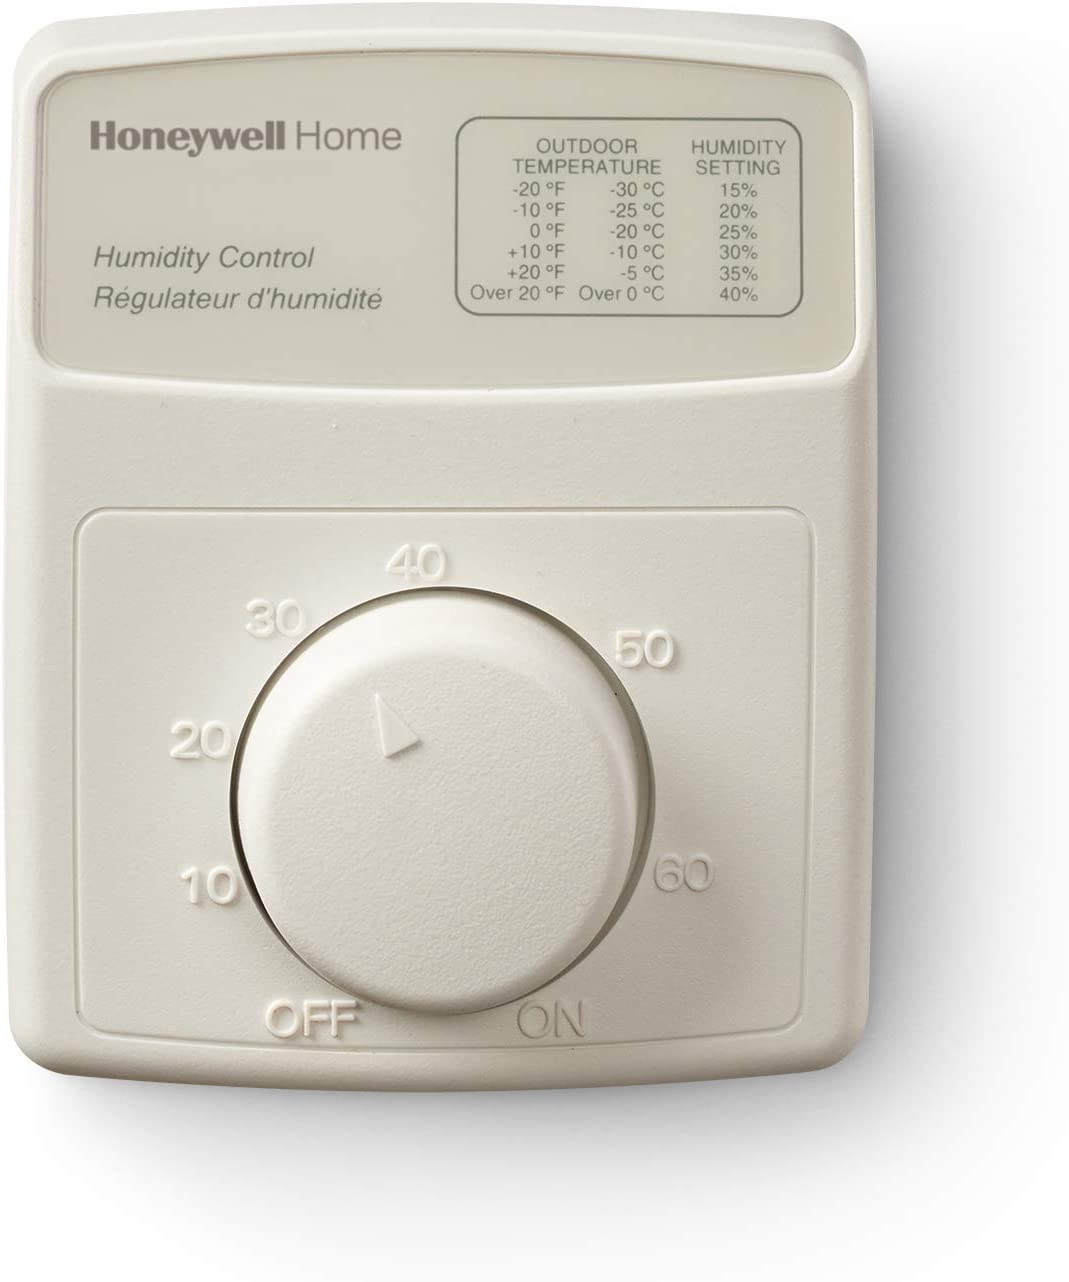 Honeywell Home Limited time Sales of SALE items from new works cheap sale H8908B House Humidistat Whole